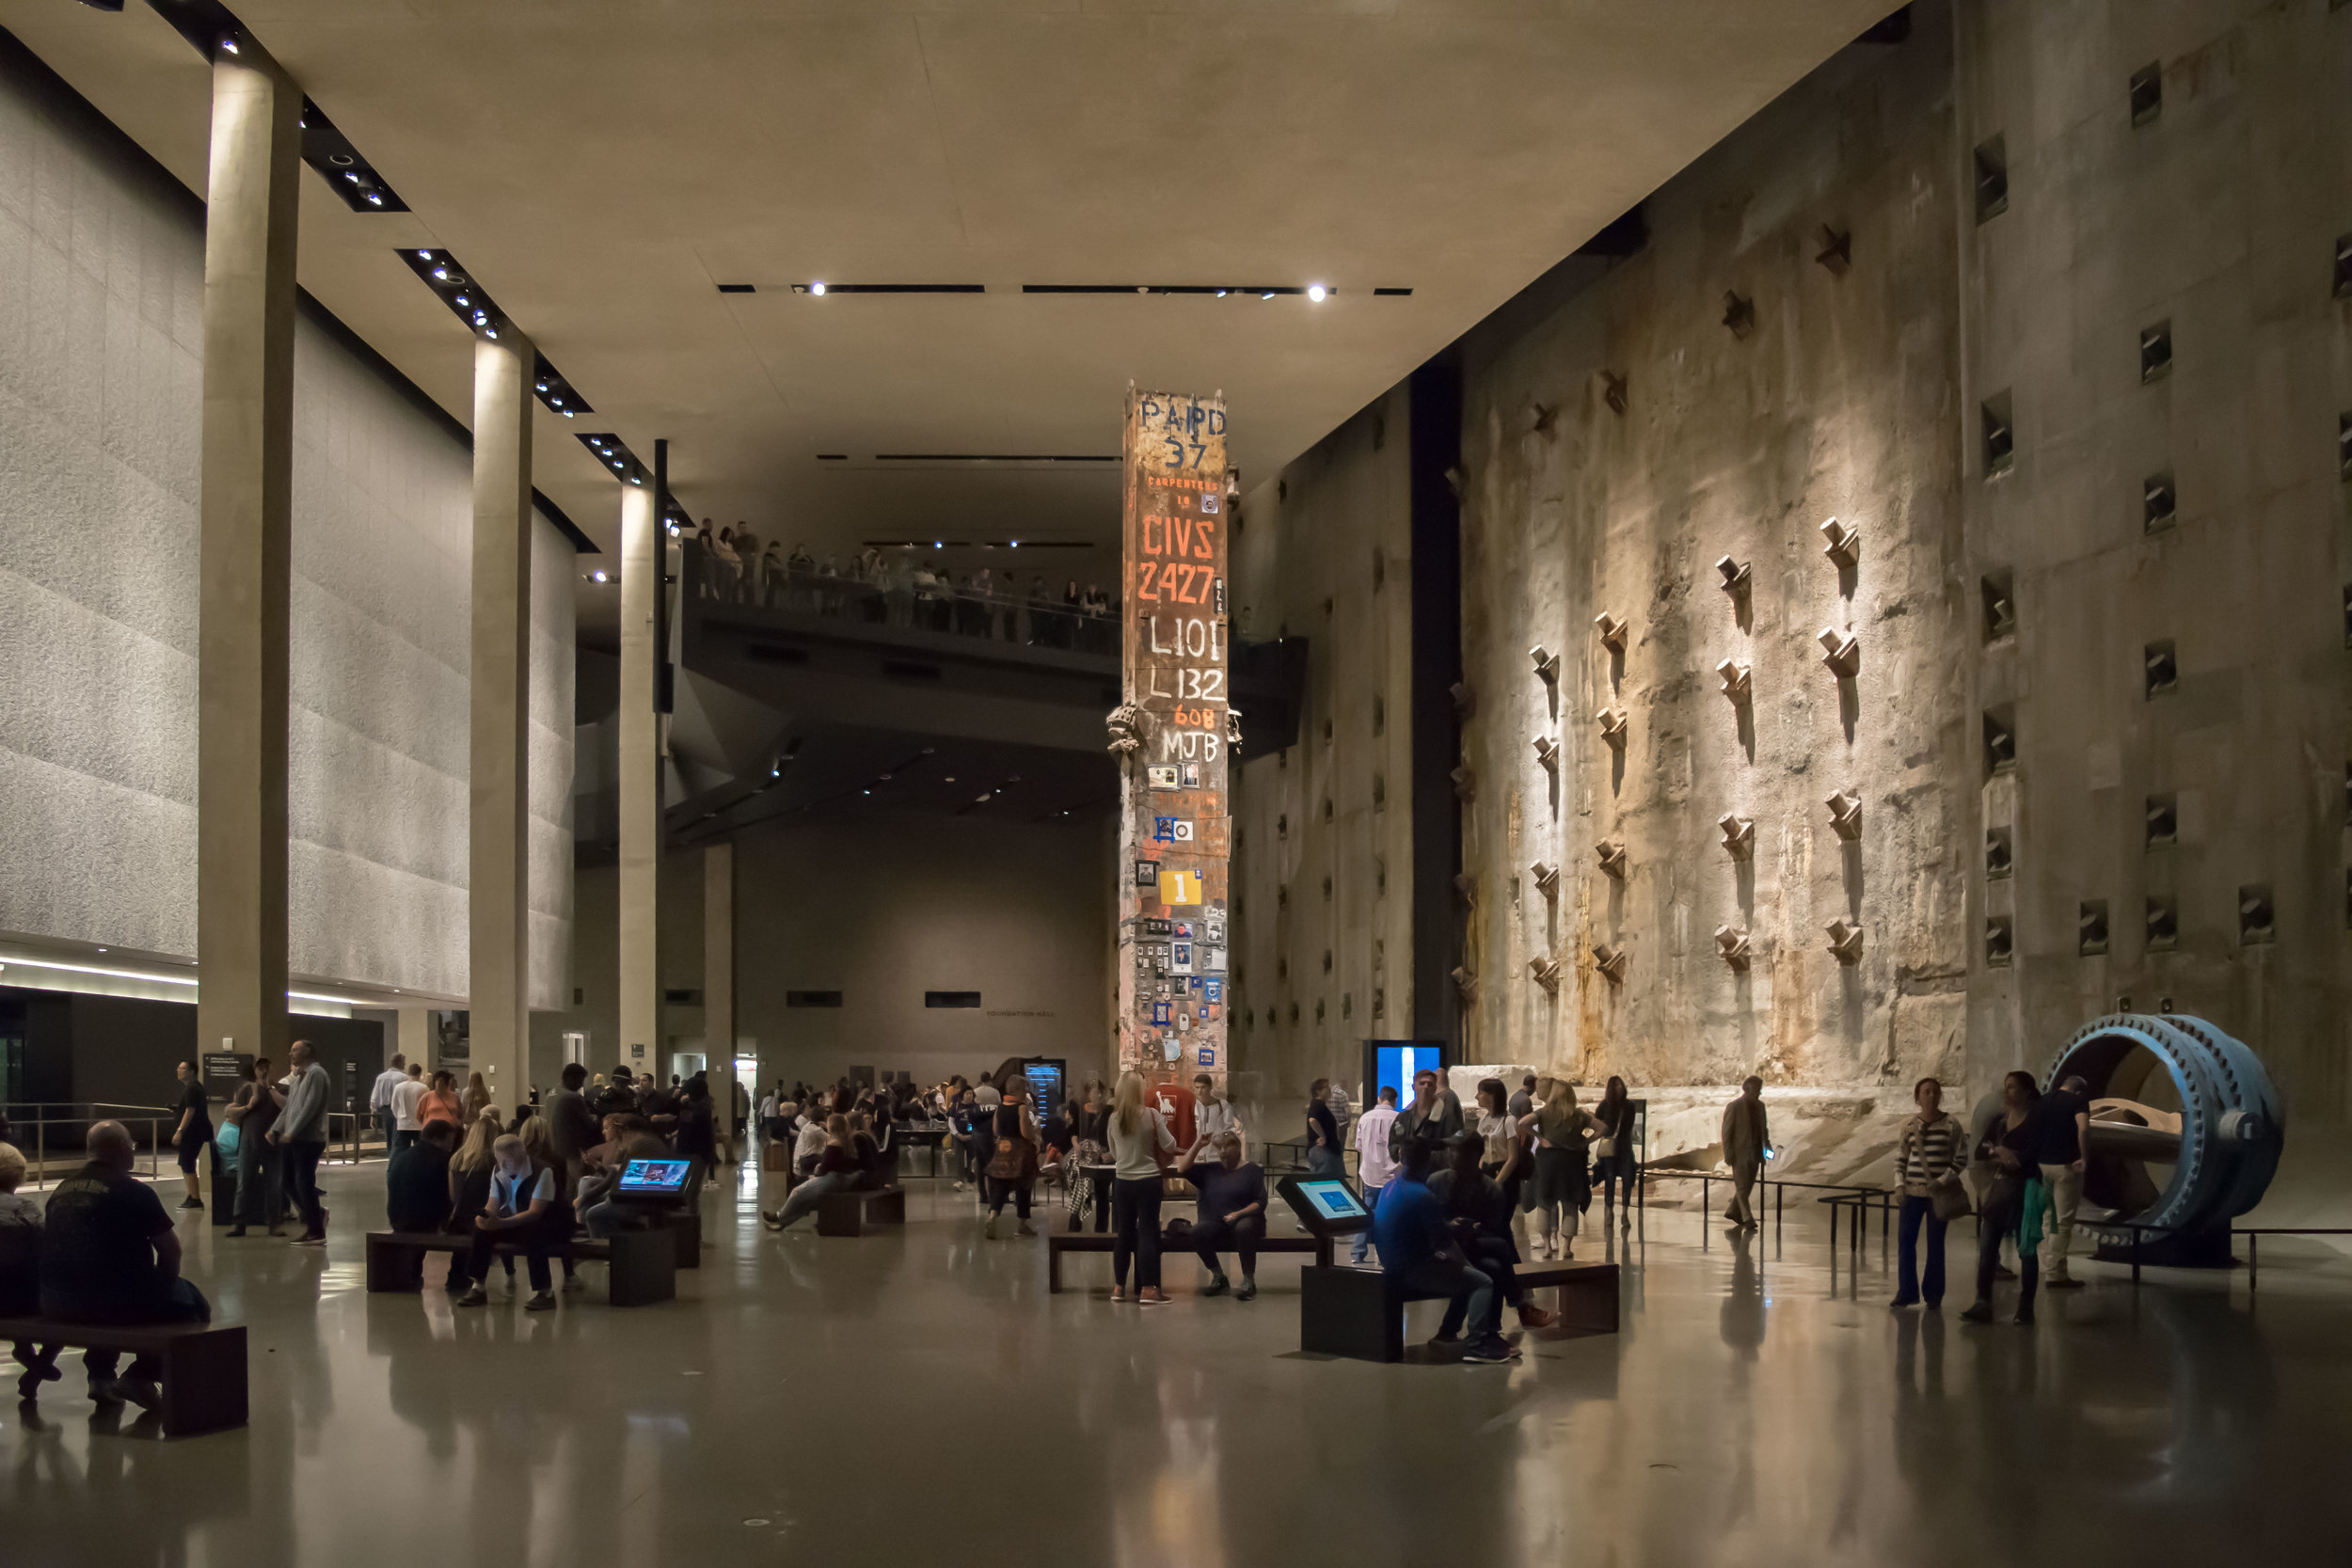 Foundation Hall in the 9/11 Museum